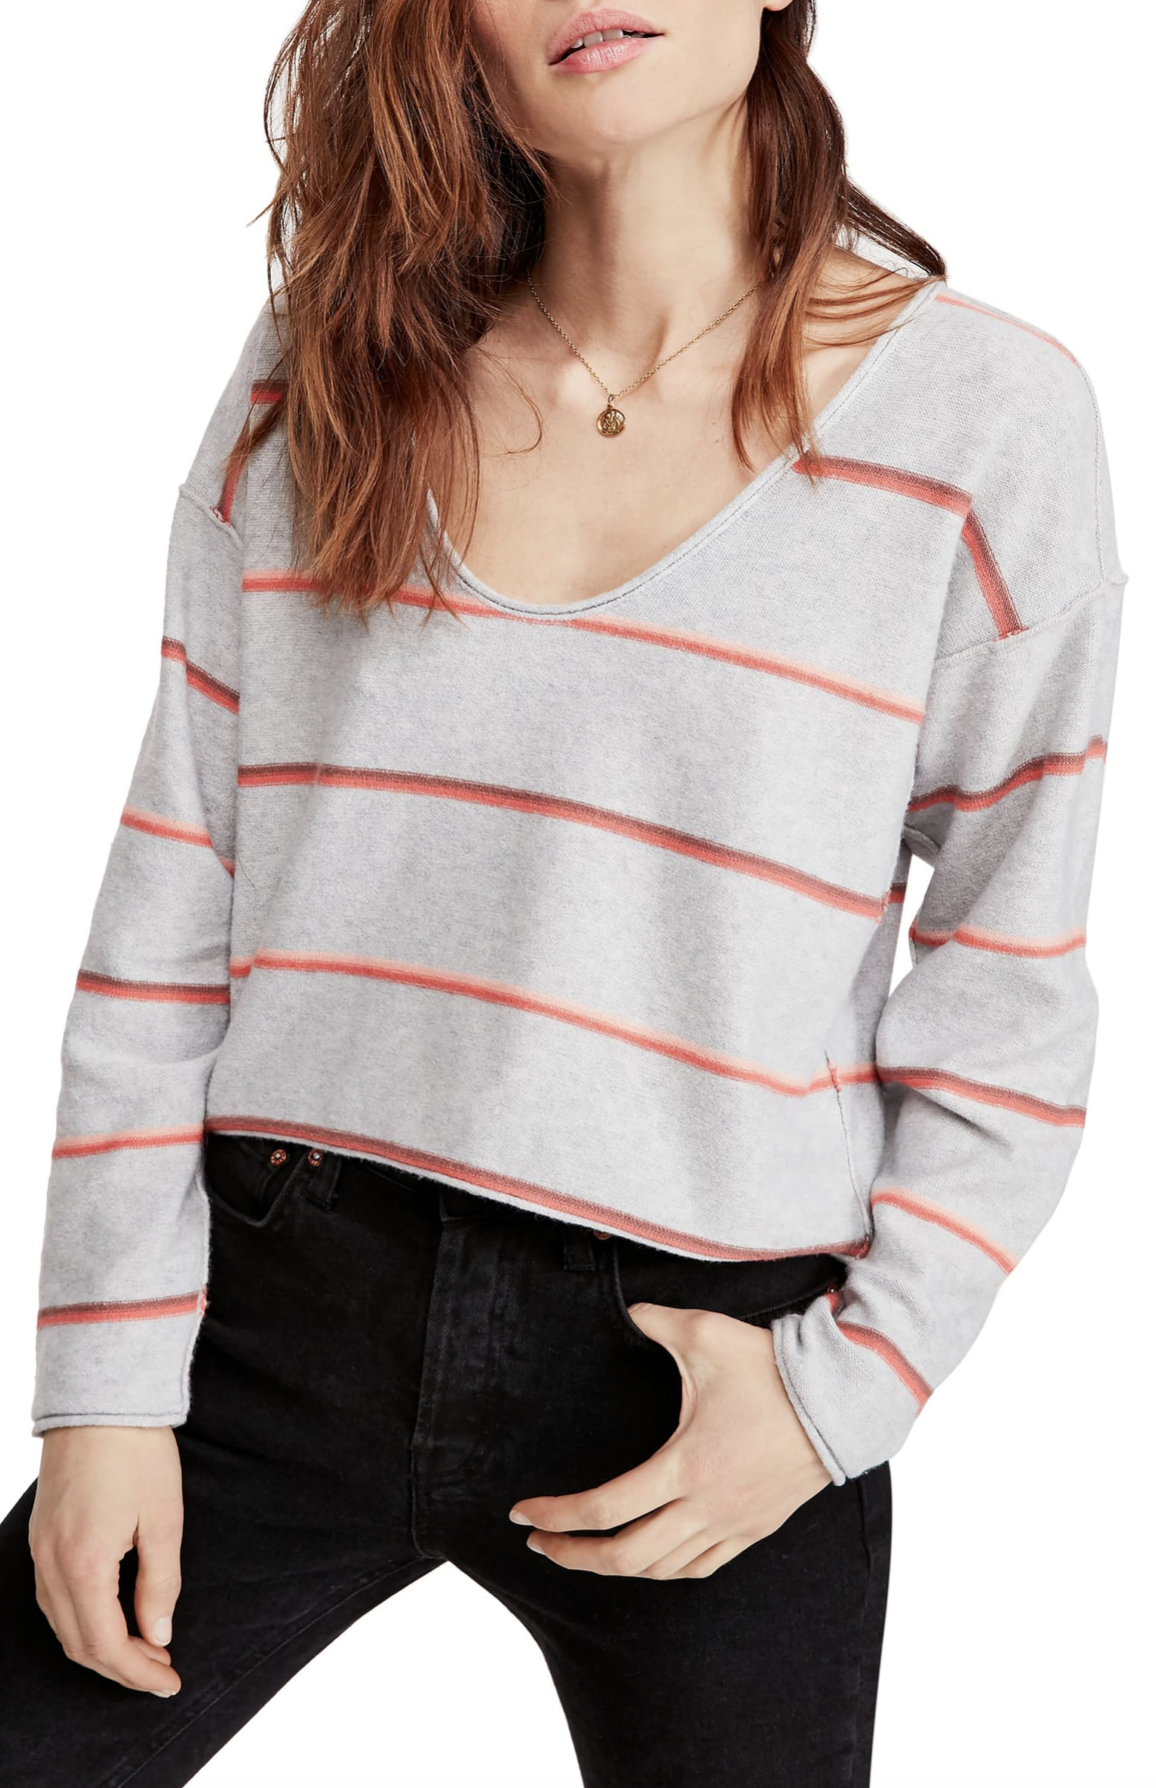 Free People Make You Mine Stripe Sweater - $84.90